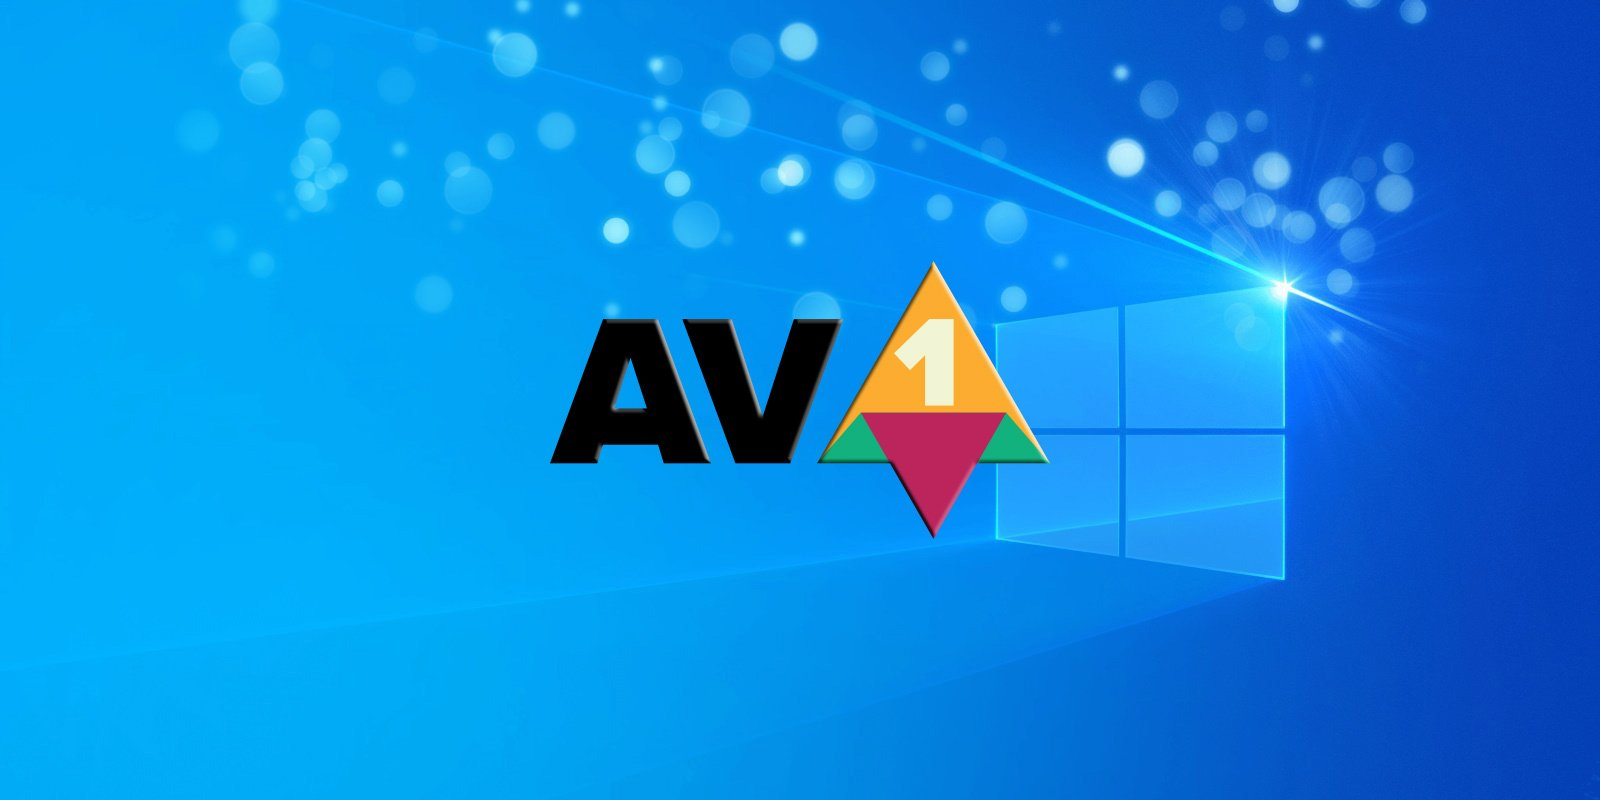 Windows 10 AV1